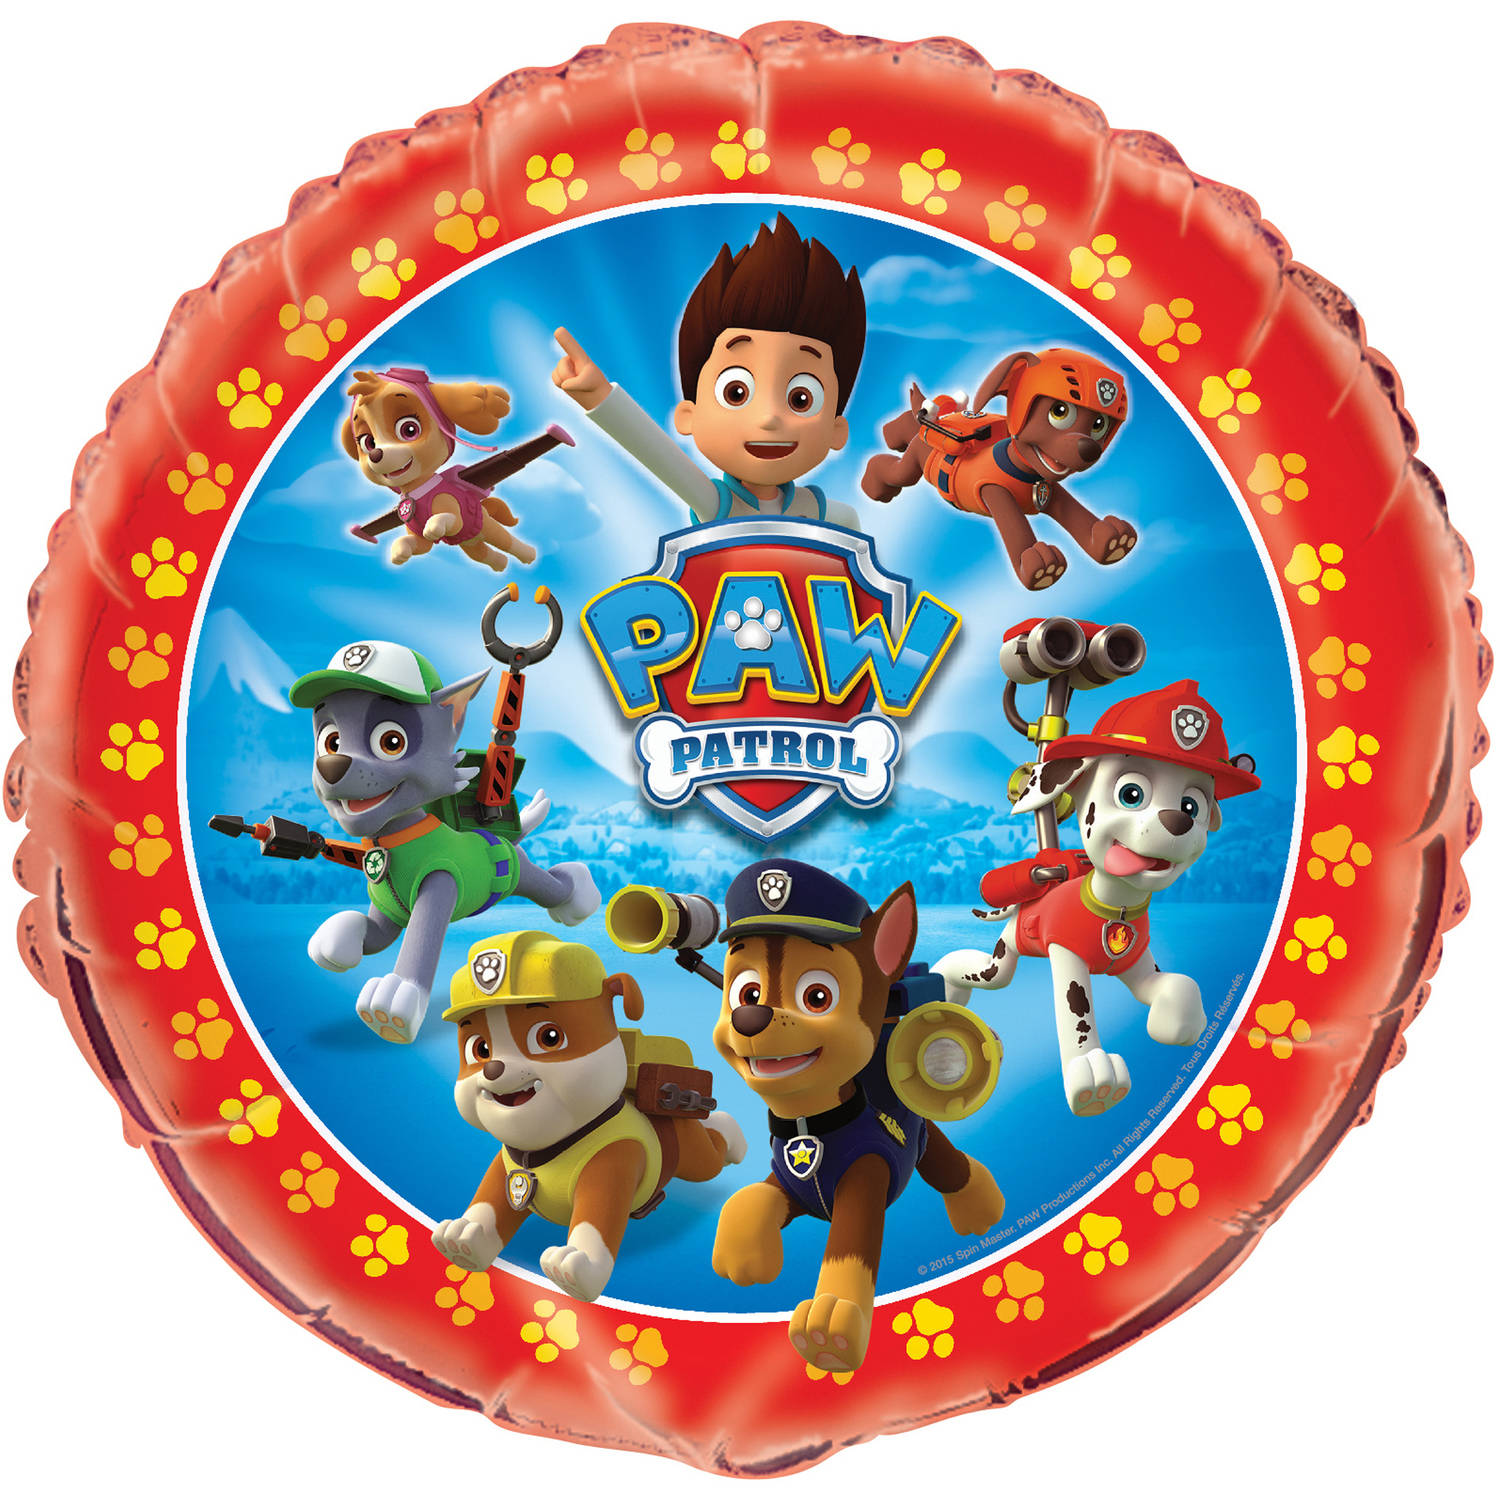 PAW Patrol Balloons Decorations